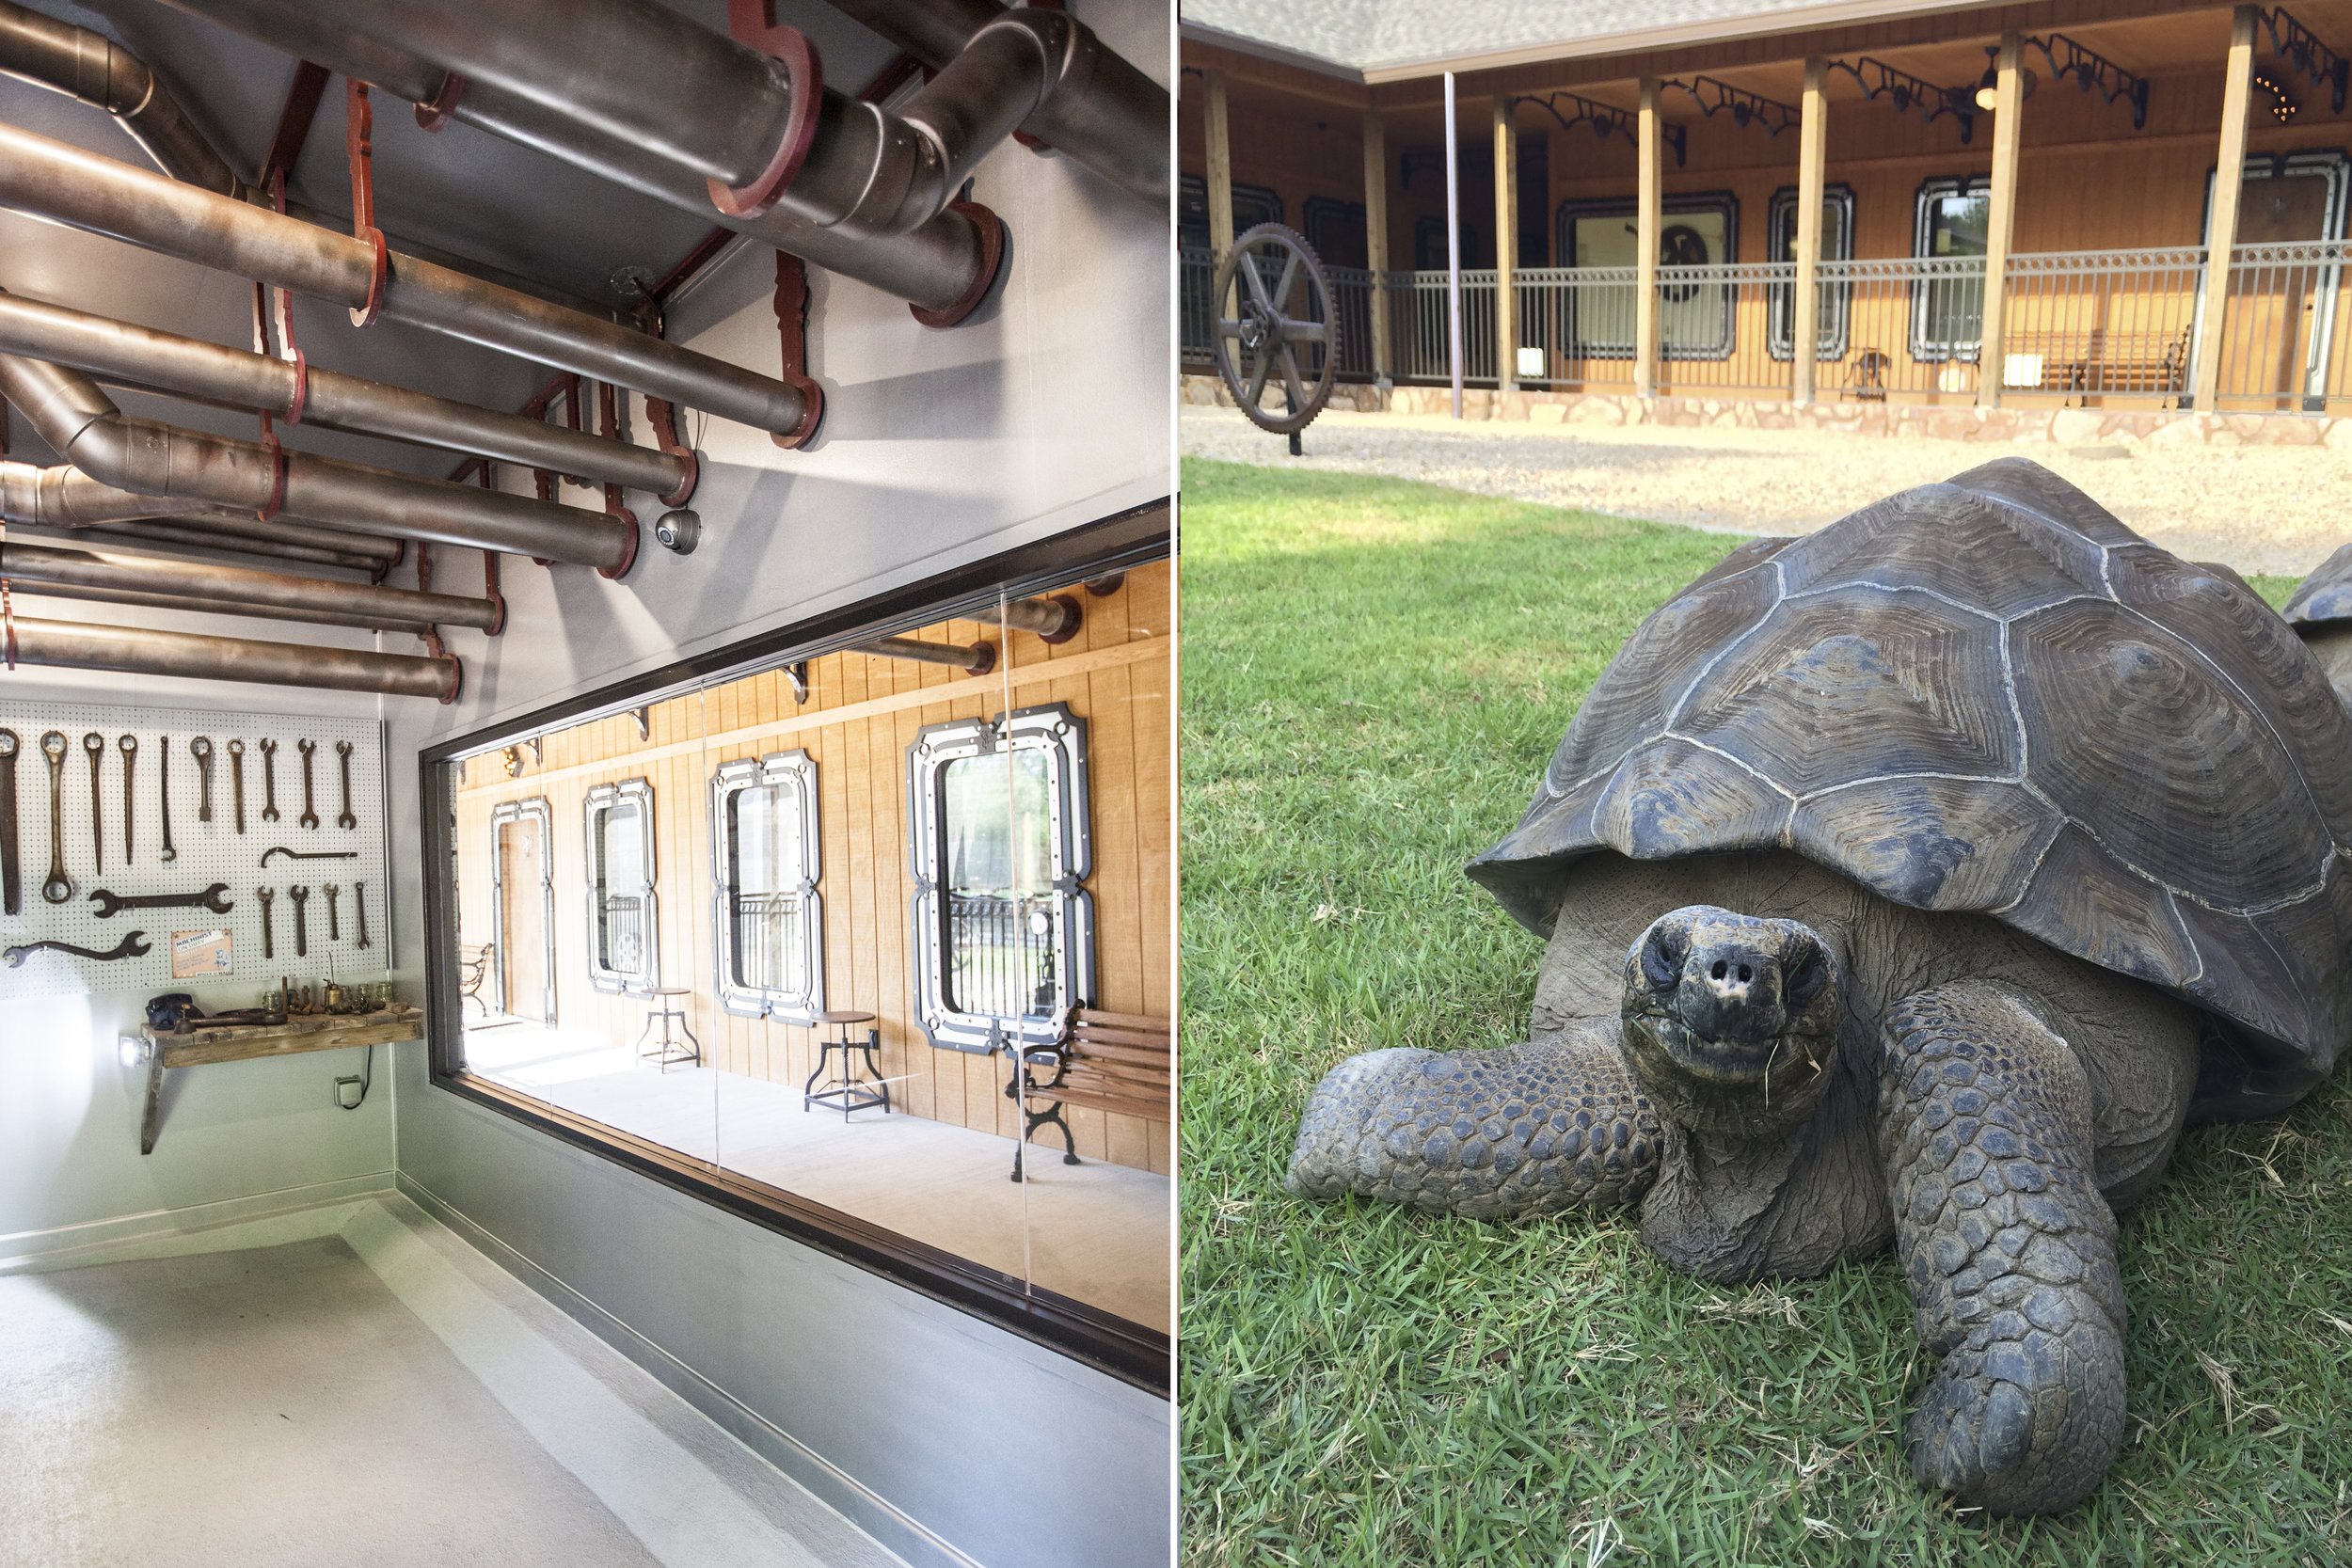 From the tortoise house, one can look out the big window to the covered walkway, or go through the tortoise door into the large tortoise roaming field.